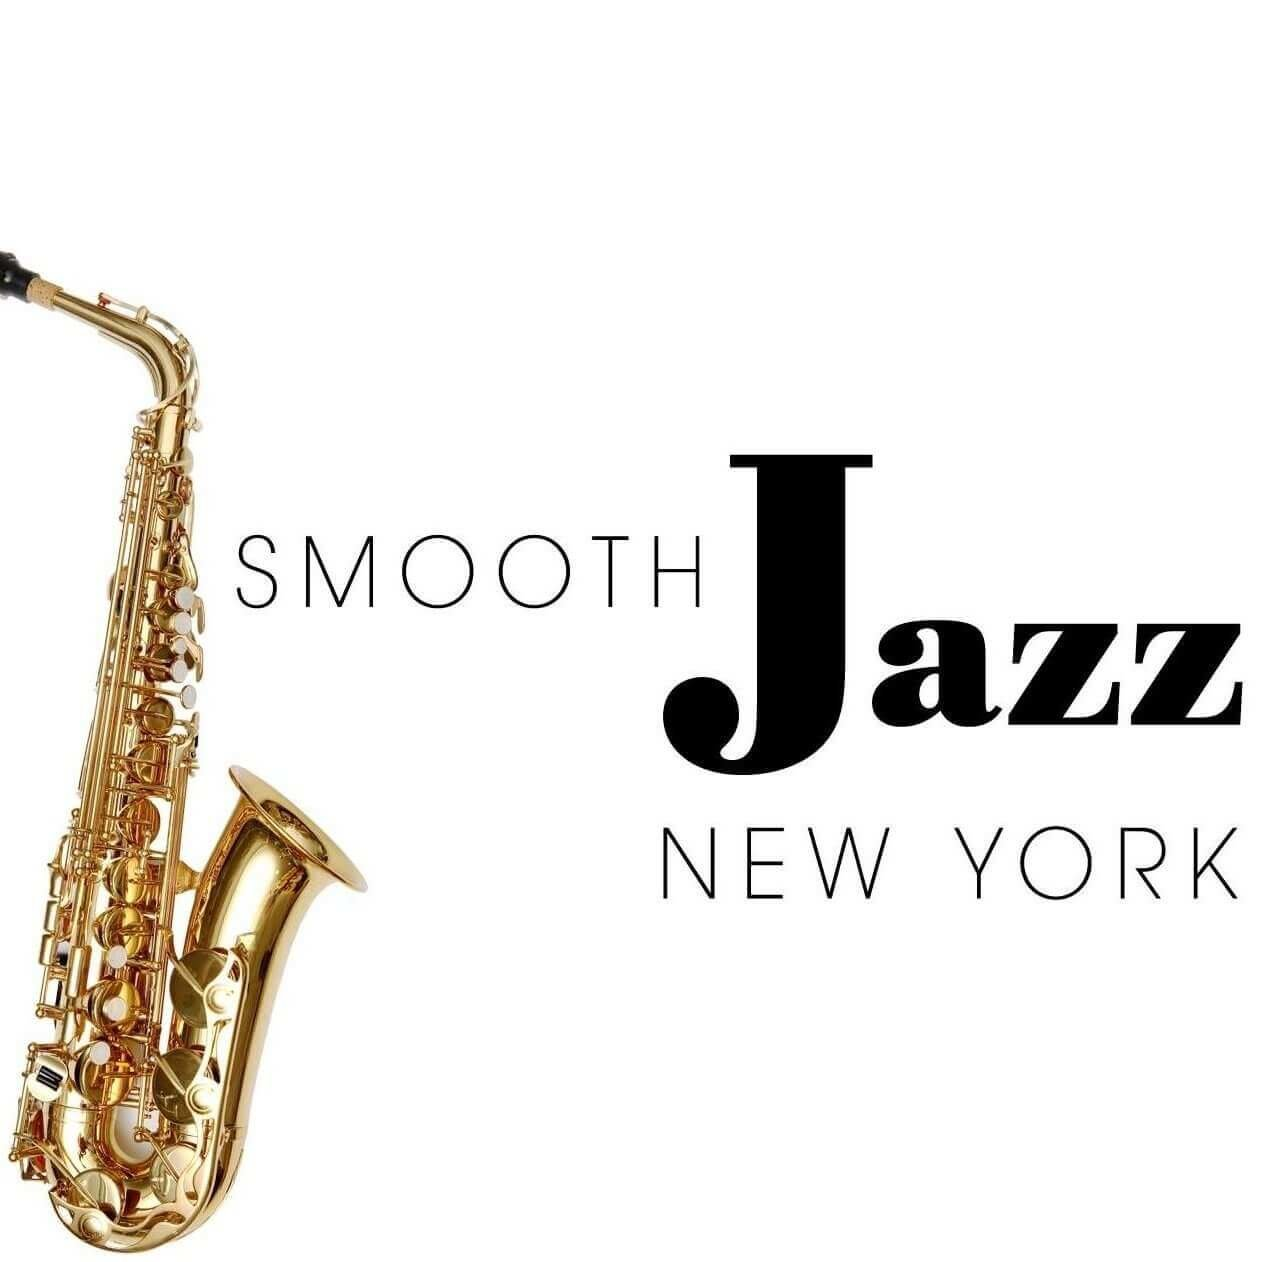 Smooth Jazz New York Cruise Series 2019